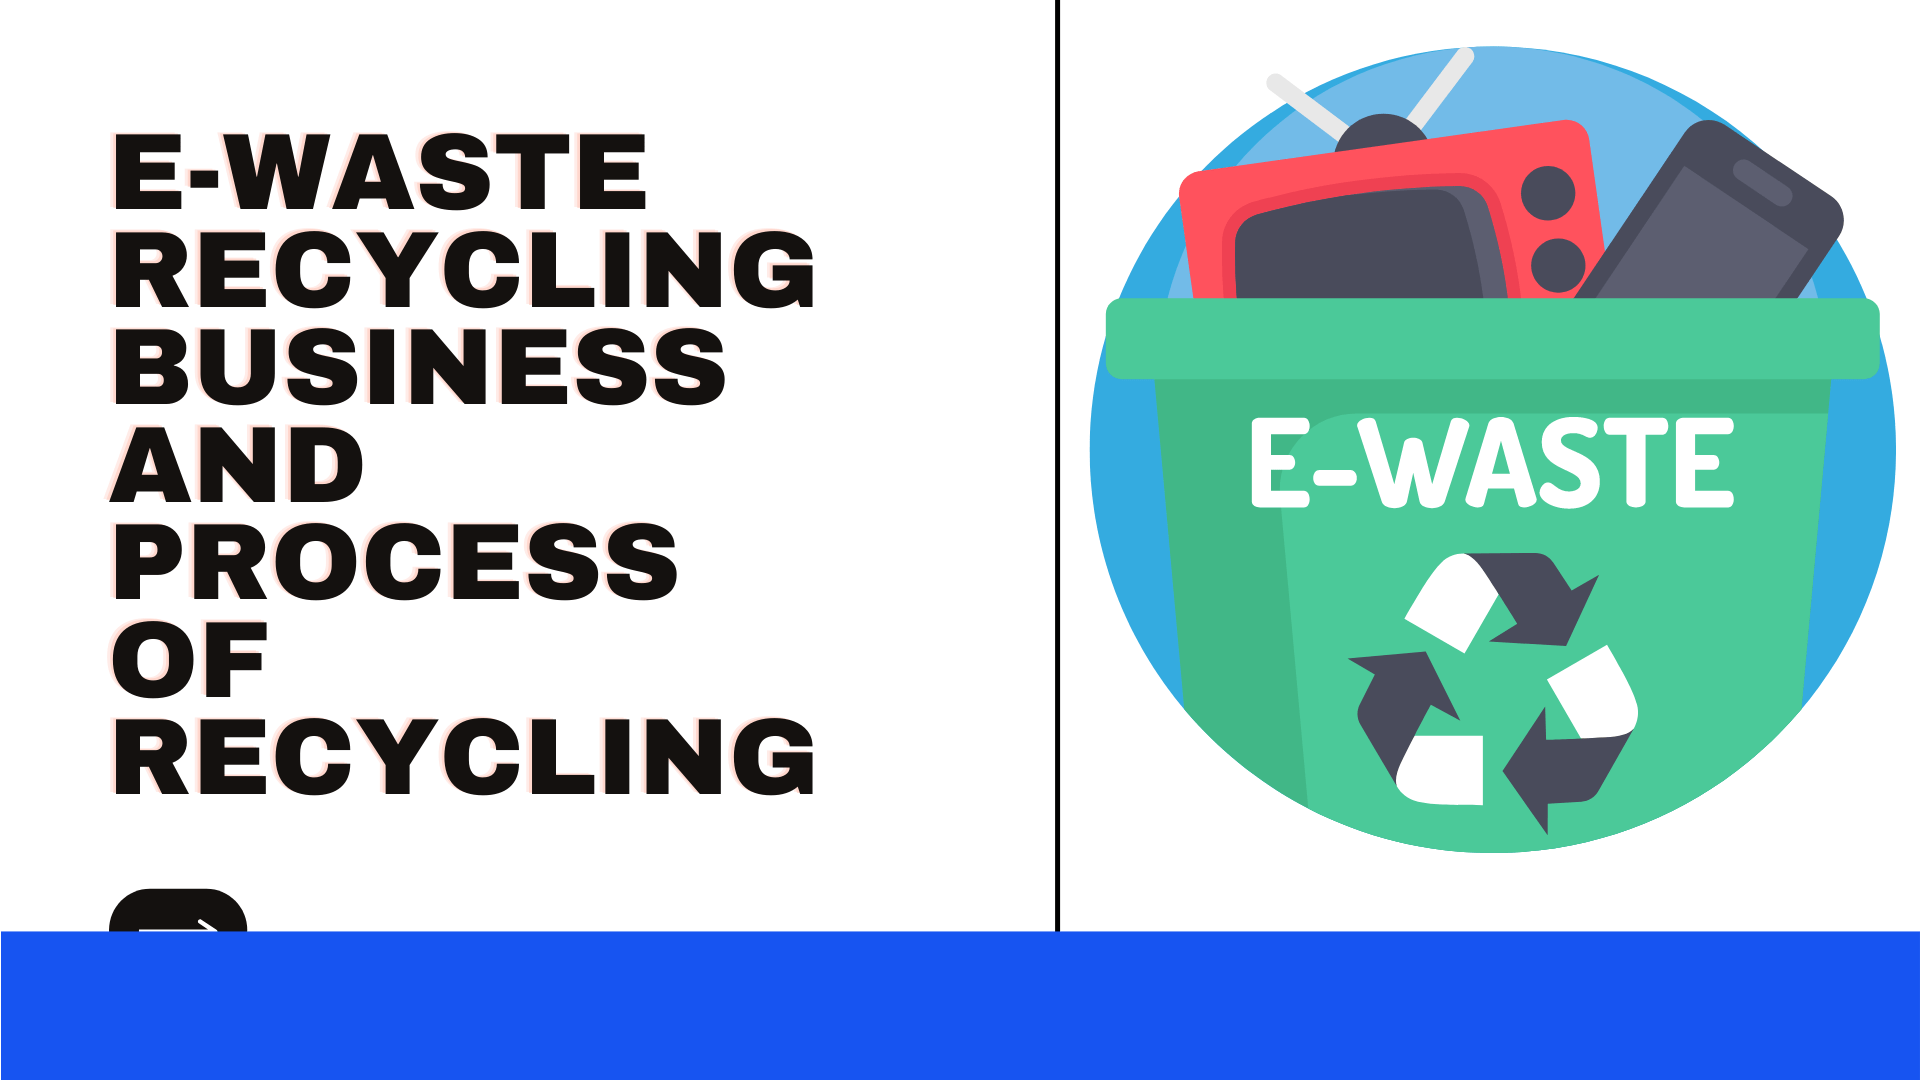 E-waste Recycling Business